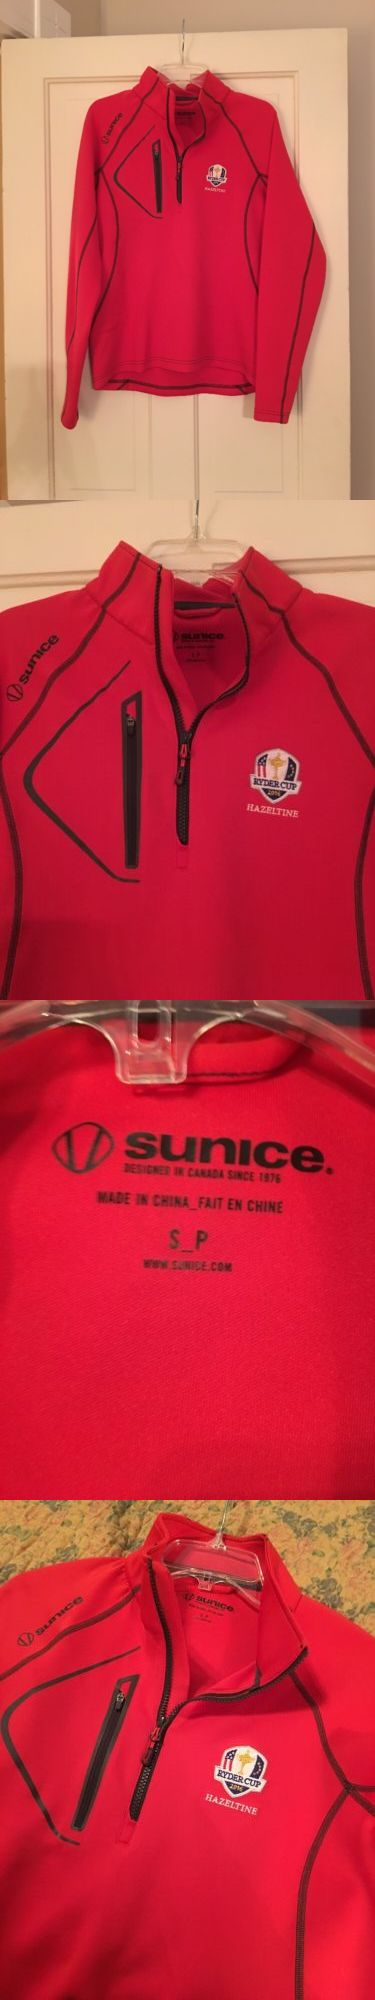 Other Mens Golf Clothing 181141: New Mens Sunice 2016 Ryder Cup Pullover Small S Red Black Nwot -> BUY IT NOW ONLY: $84.99 on eBay!